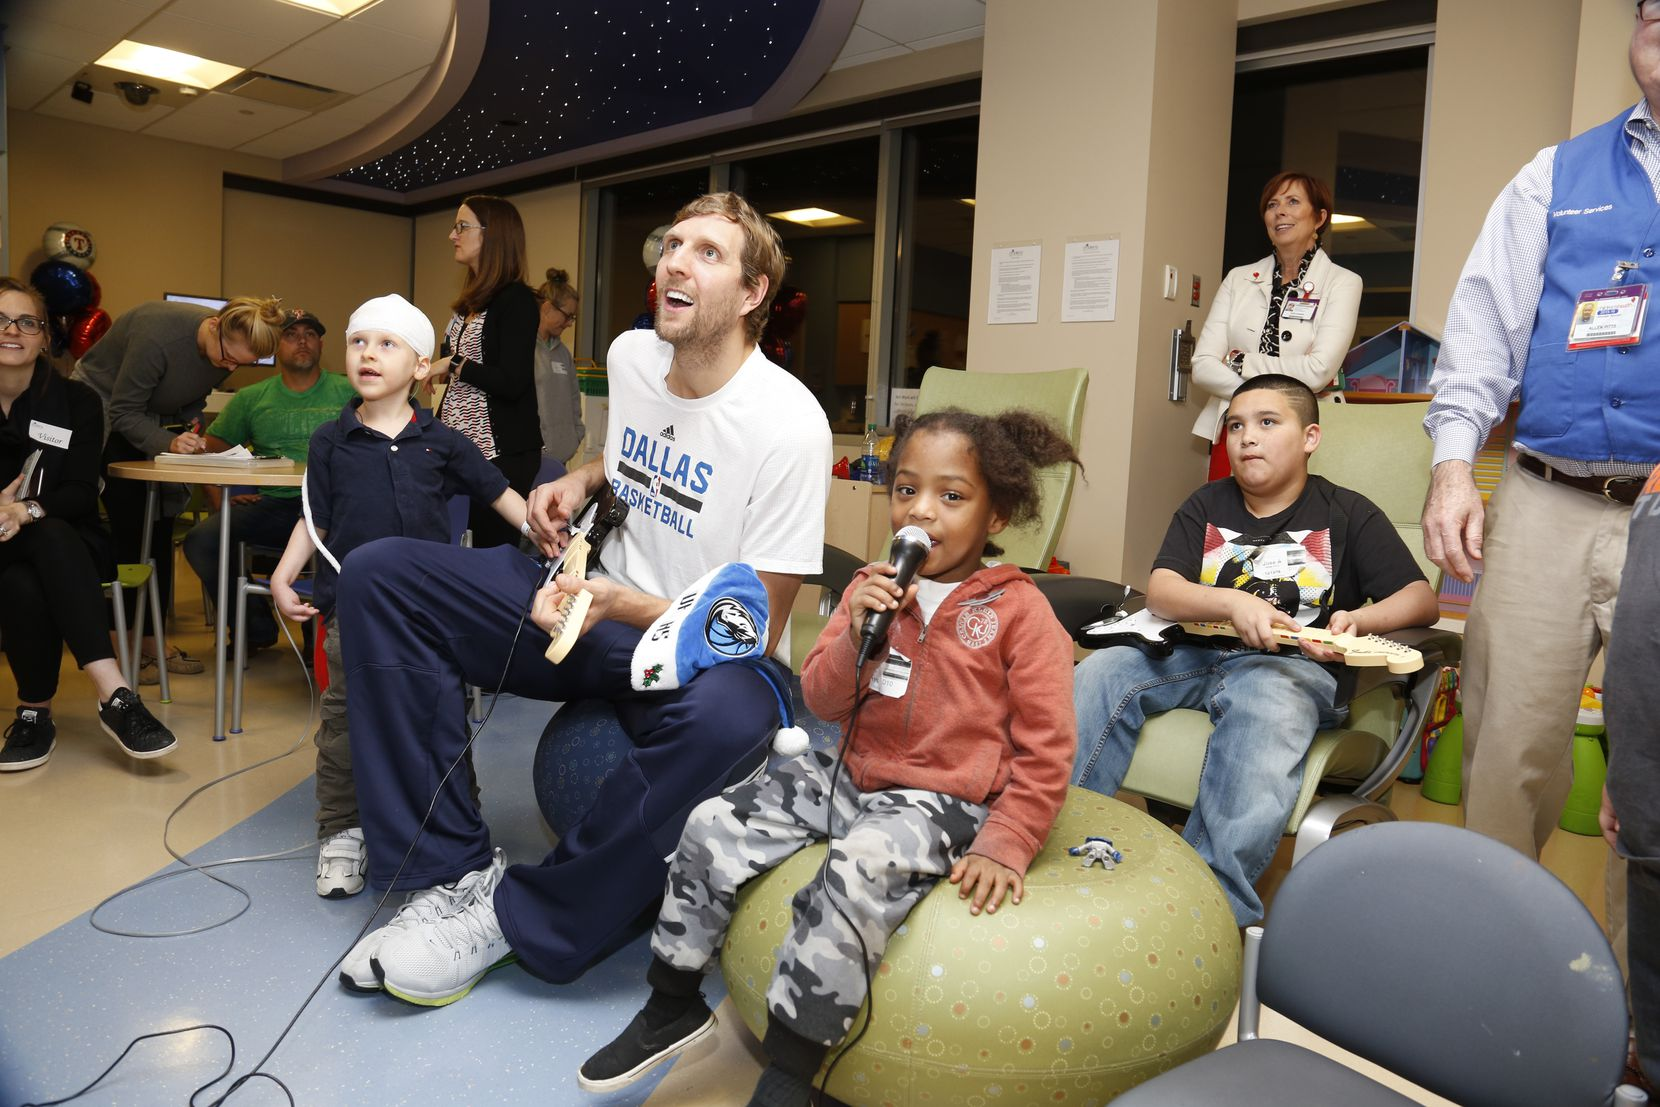 Dirk Nowitzki plays Guitar Hero with patients at Children's Medical Center on a recent visit.